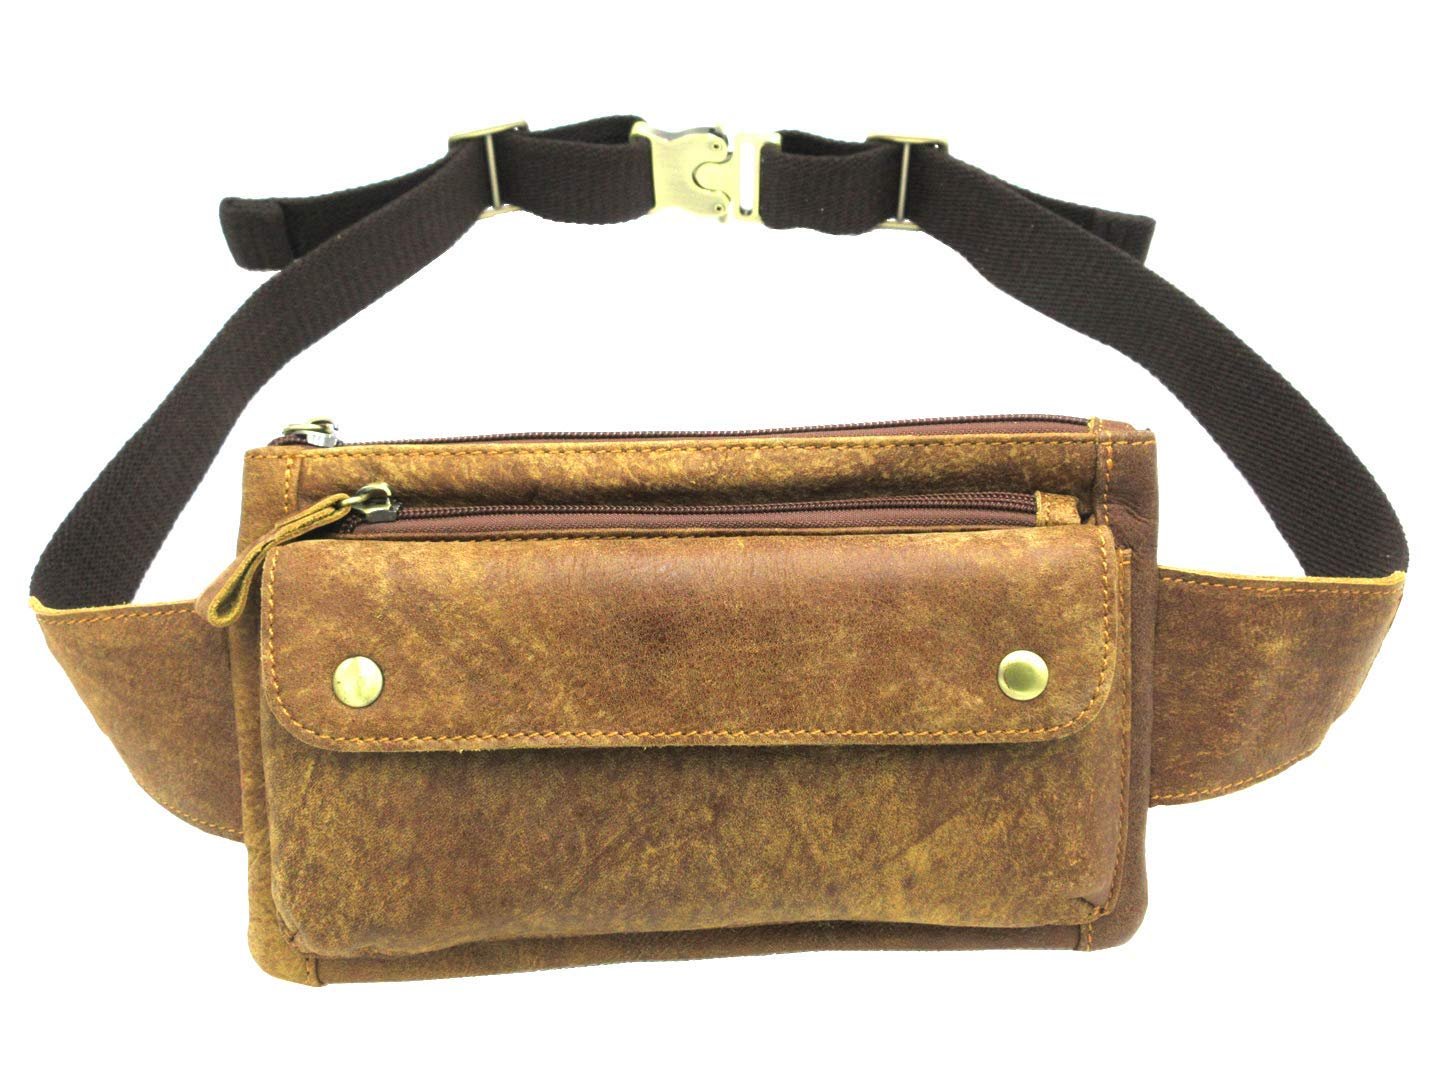 Huameibang Genuine Leather Waist Packs Fanny Pack with Adjustable Strap for Travel Running Hiking Cycling (Yellowish-Brown) by HUAMEIBANG